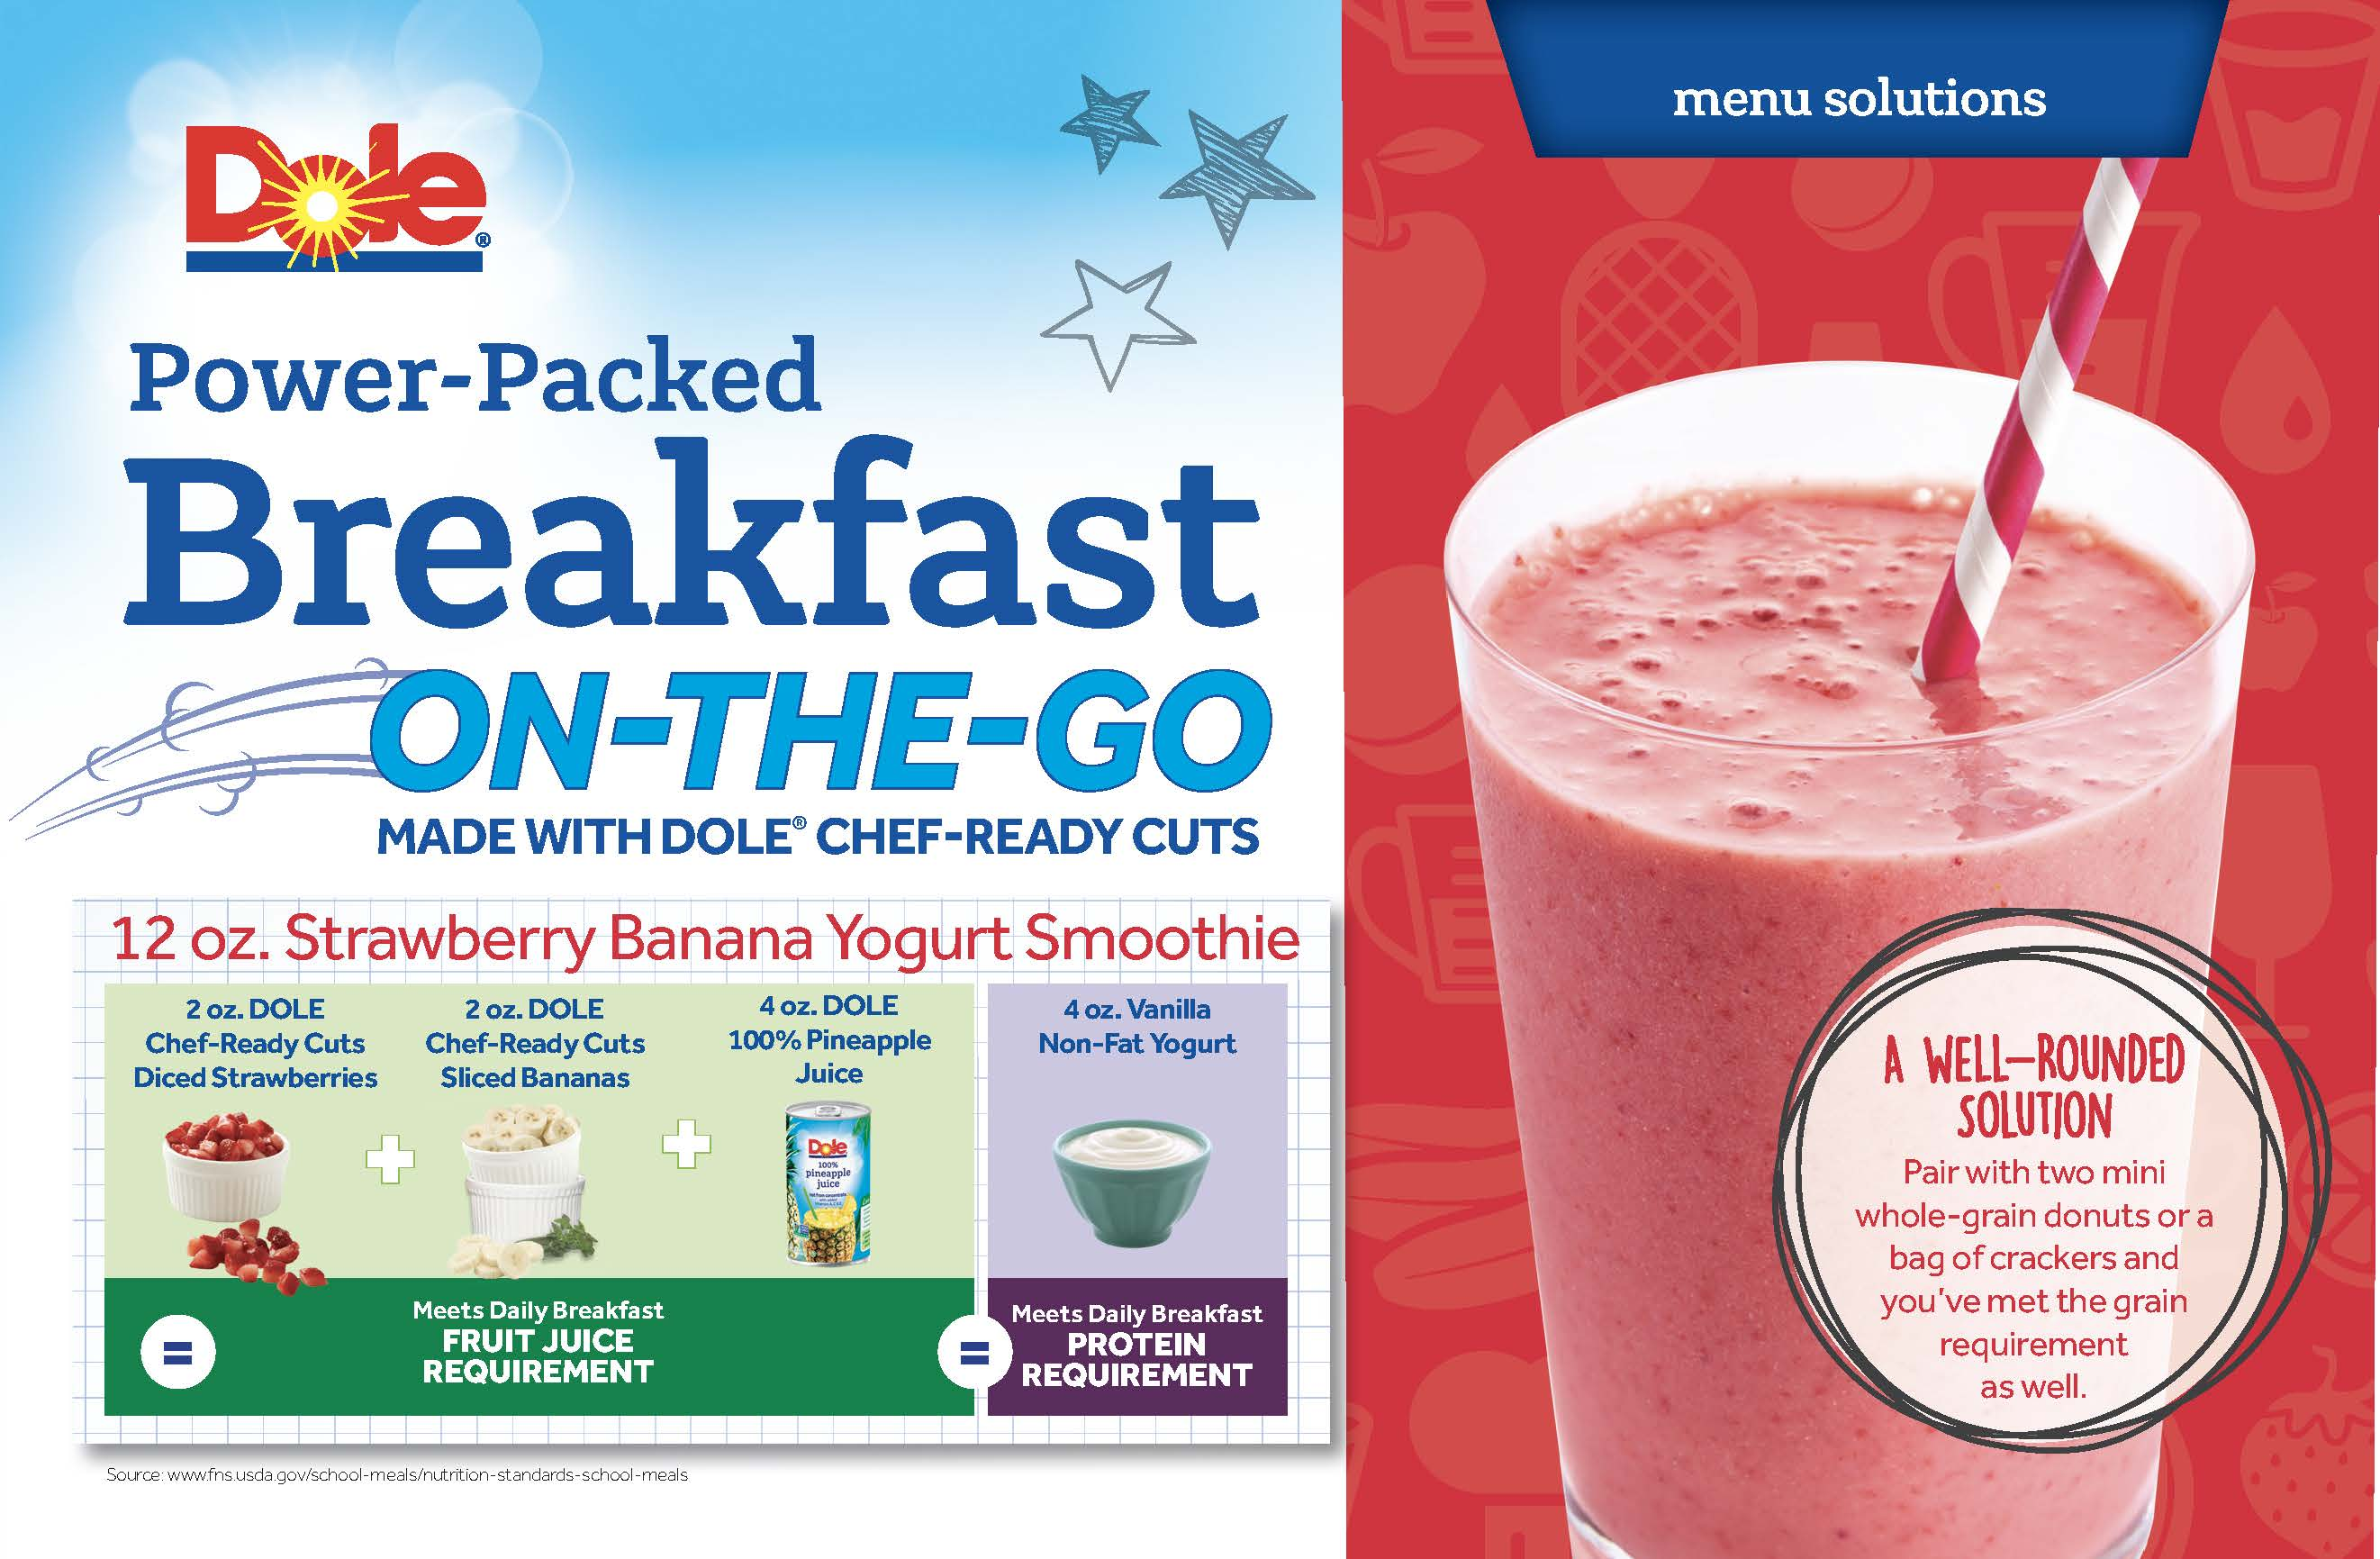 Dole schoolsmoothie sheet page 1 wdppj9